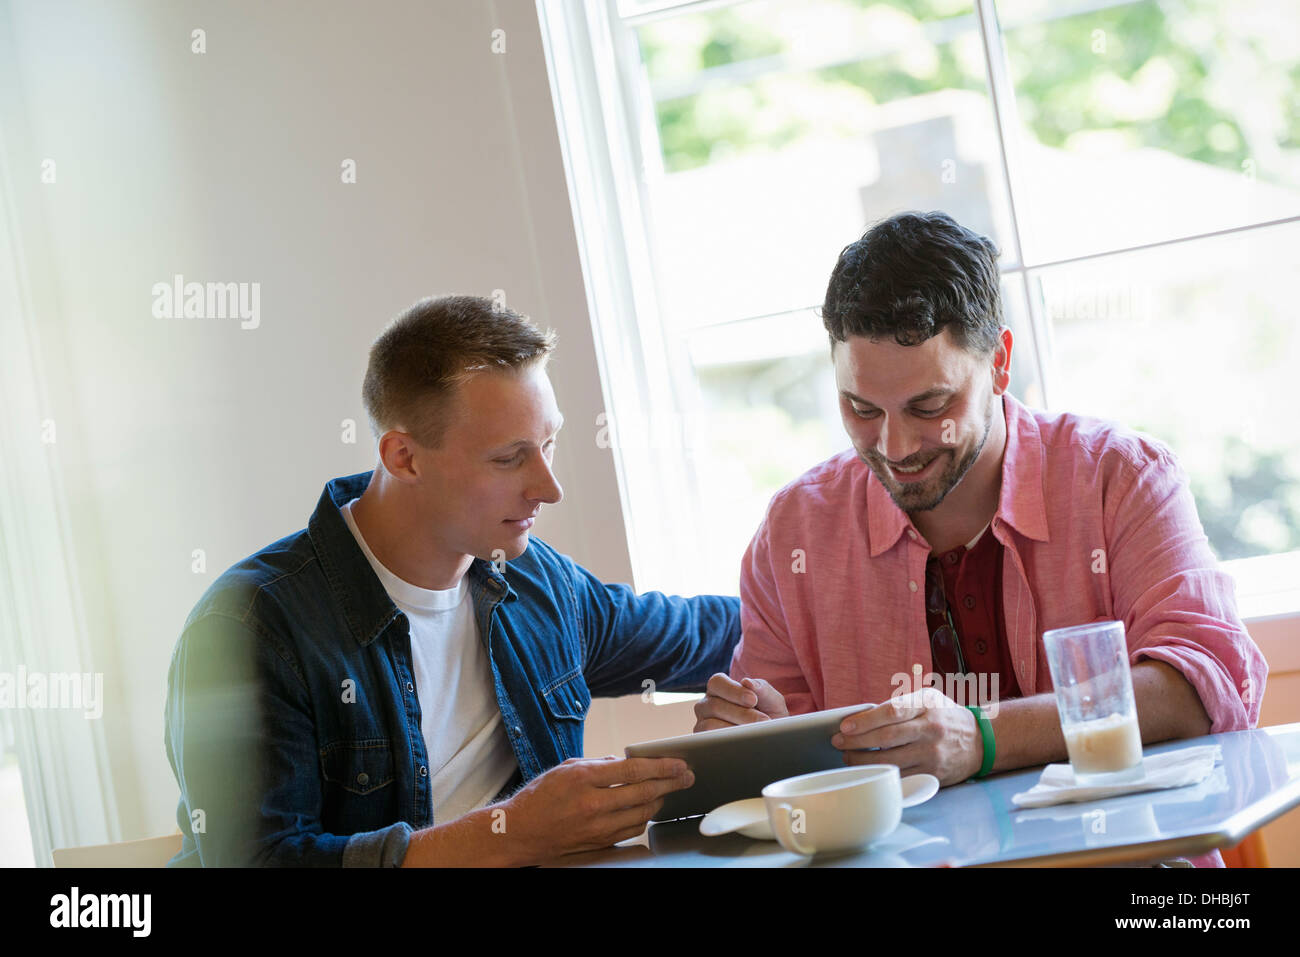 Two men at a cafe table, using a digital tablet. - Stock Image